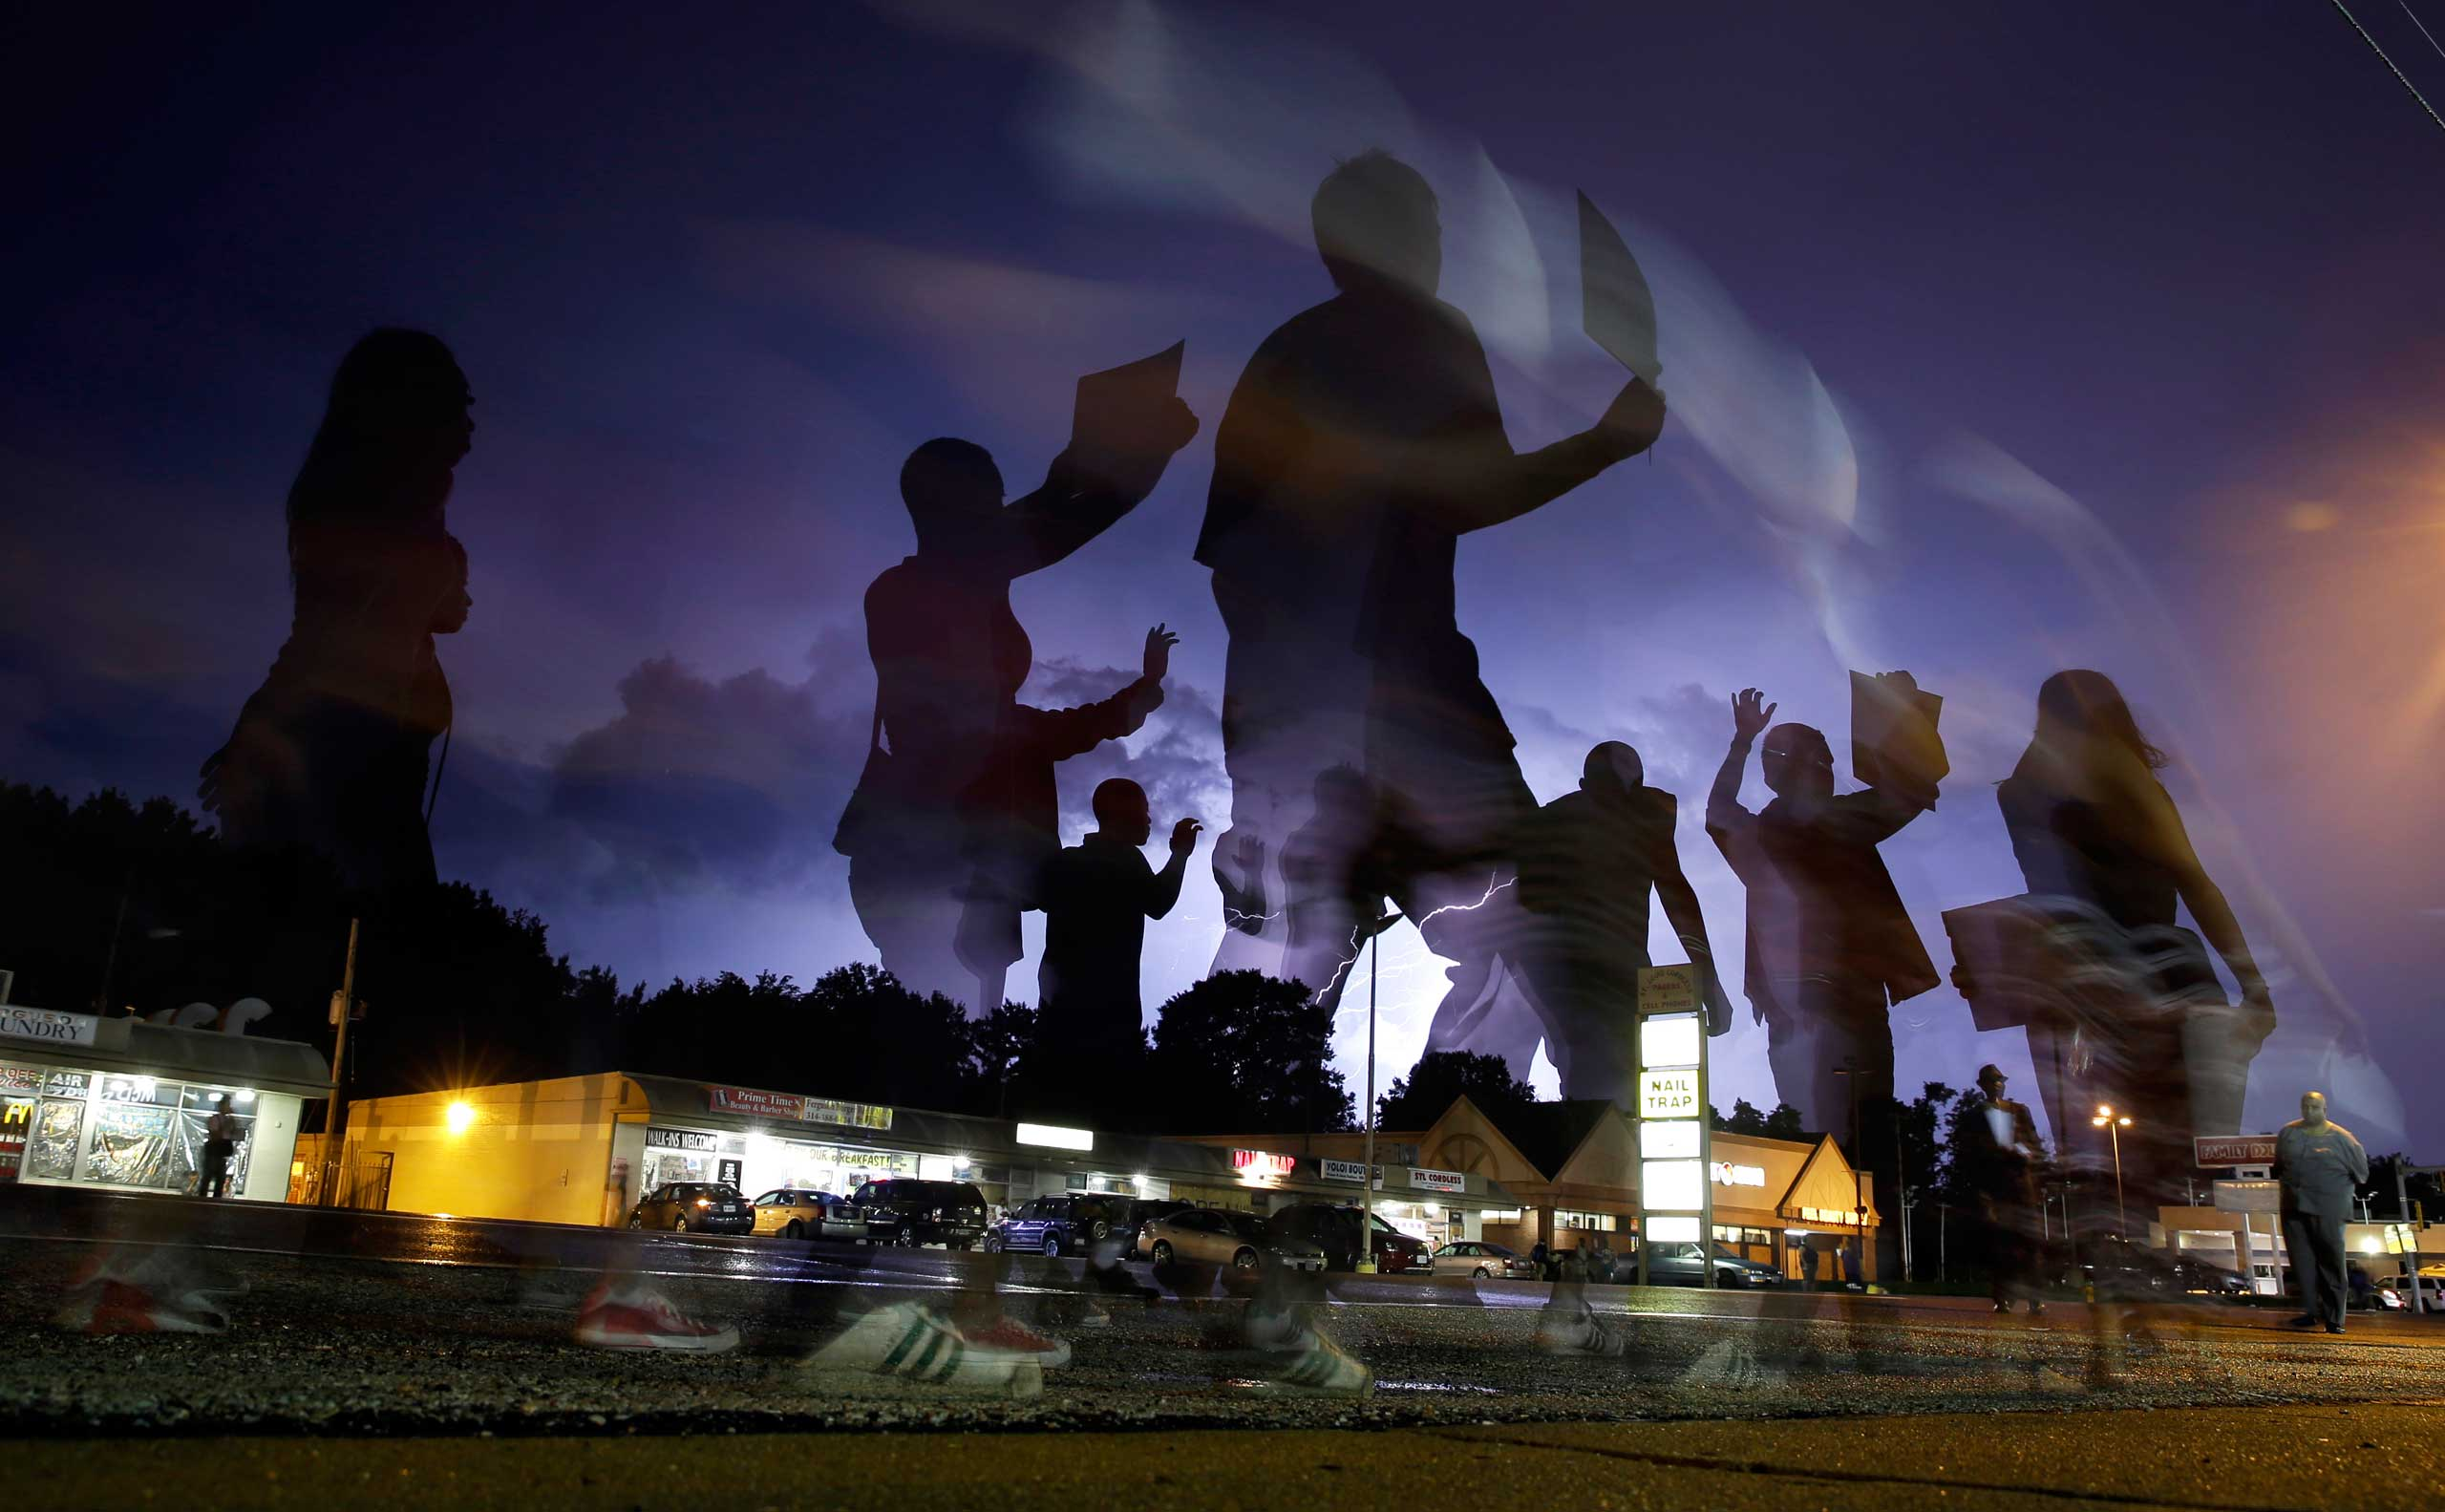 In this unranked gallery, TIME presents the top 100 photos of the yearProtesters march in the street as lightning flashes in the distance in Ferguson, Mo, Aug. 20, 2014.